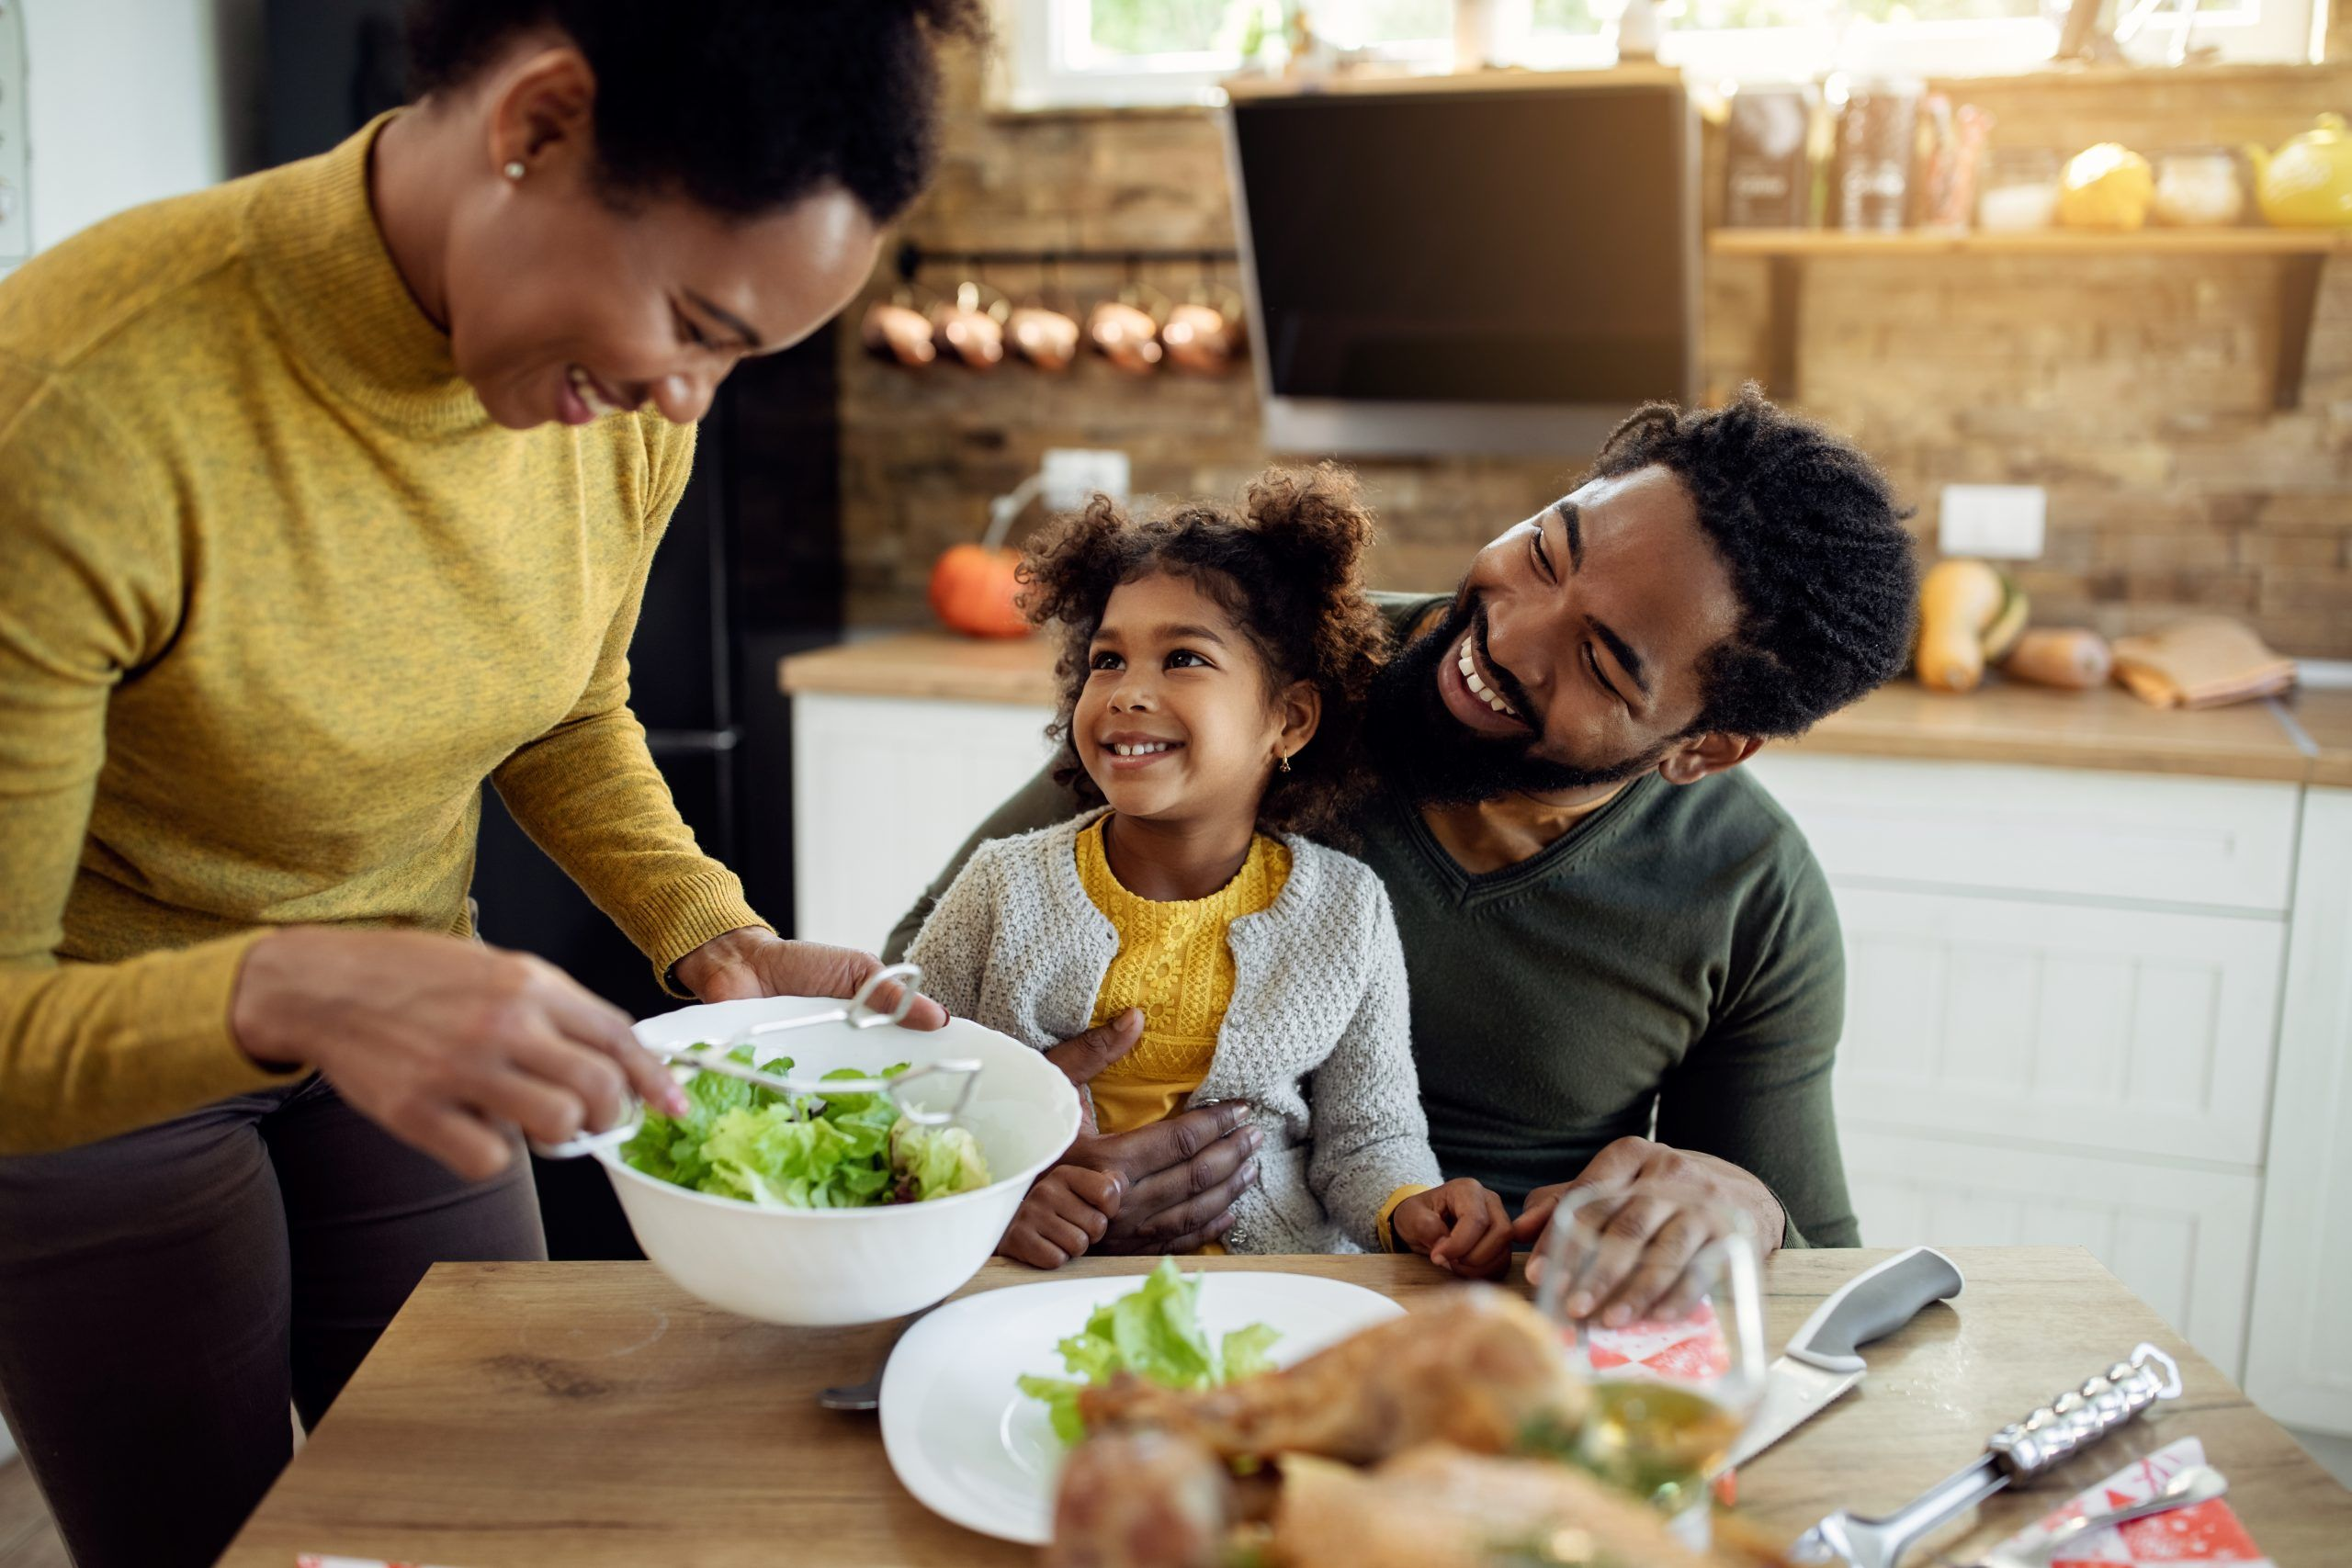 Your Family's Health Matters